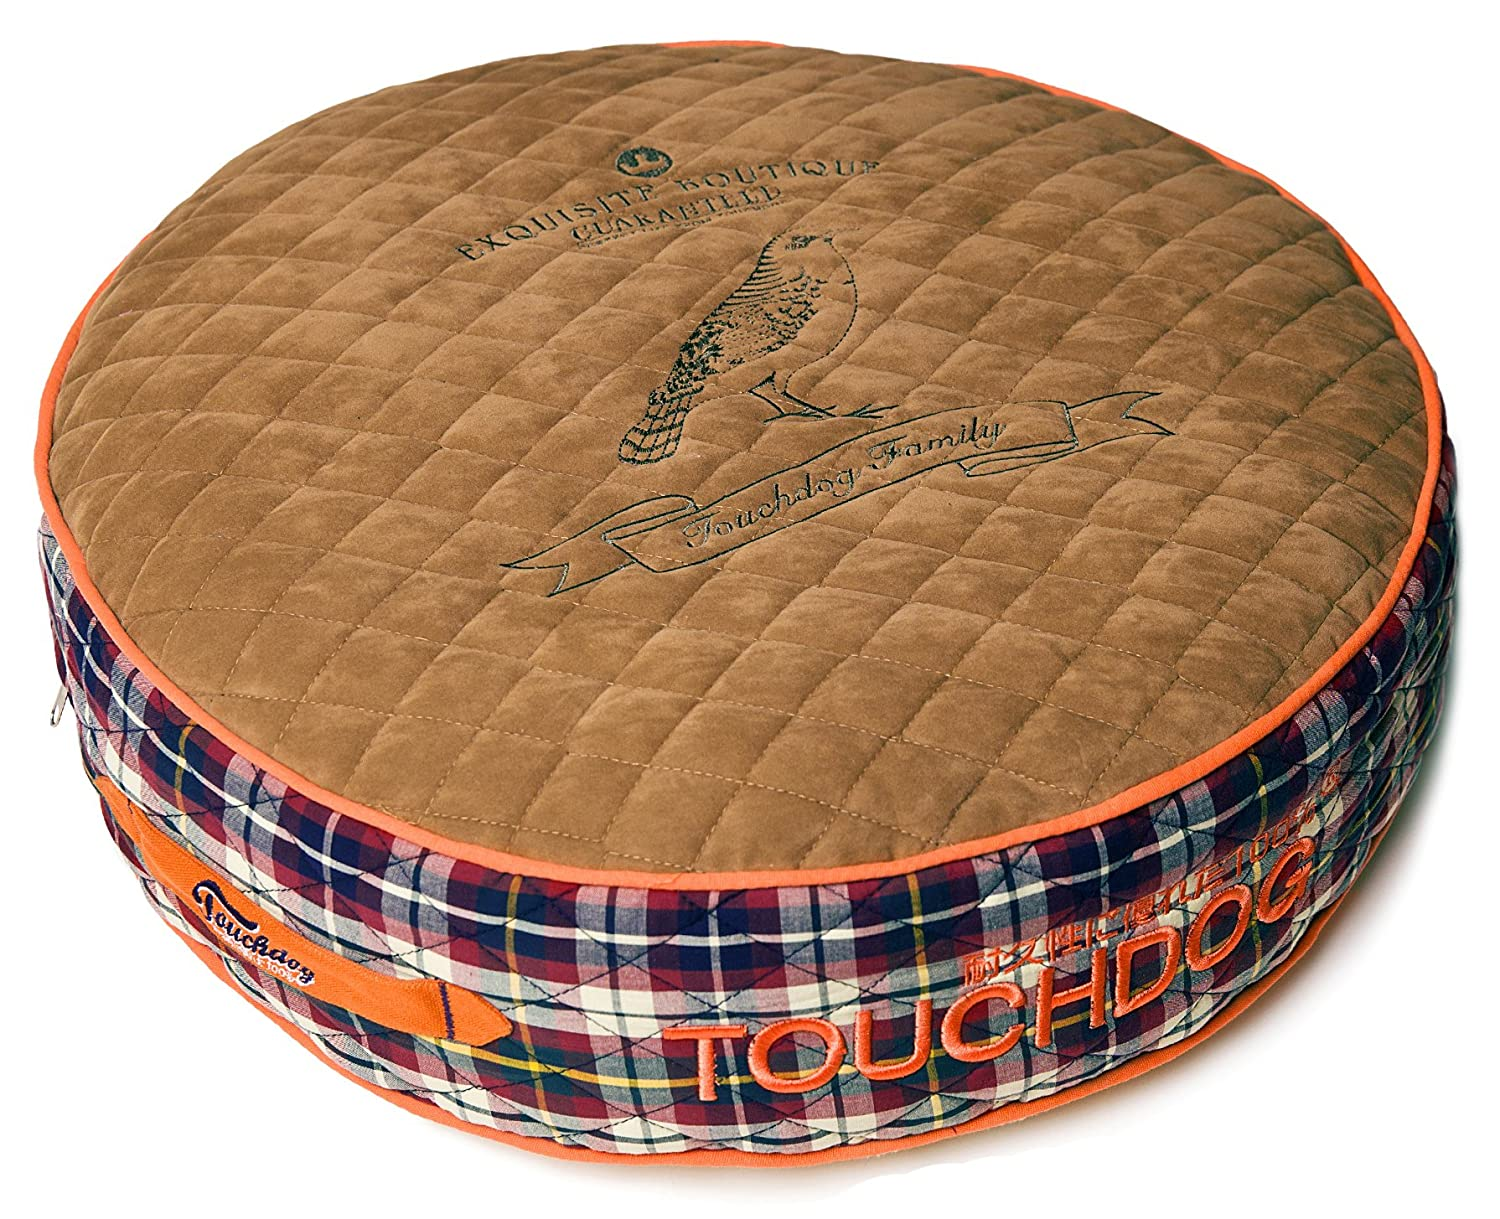 Light Brown, Cream White SM Light Brown, Cream White SM TOUCHDOG 'Bark-Royale' Posh Rounded and Raised Fashion Designer Fleece Quilted Plaid Pet Dog Bed Mat Lounge, Small, Light Brown, Cream White